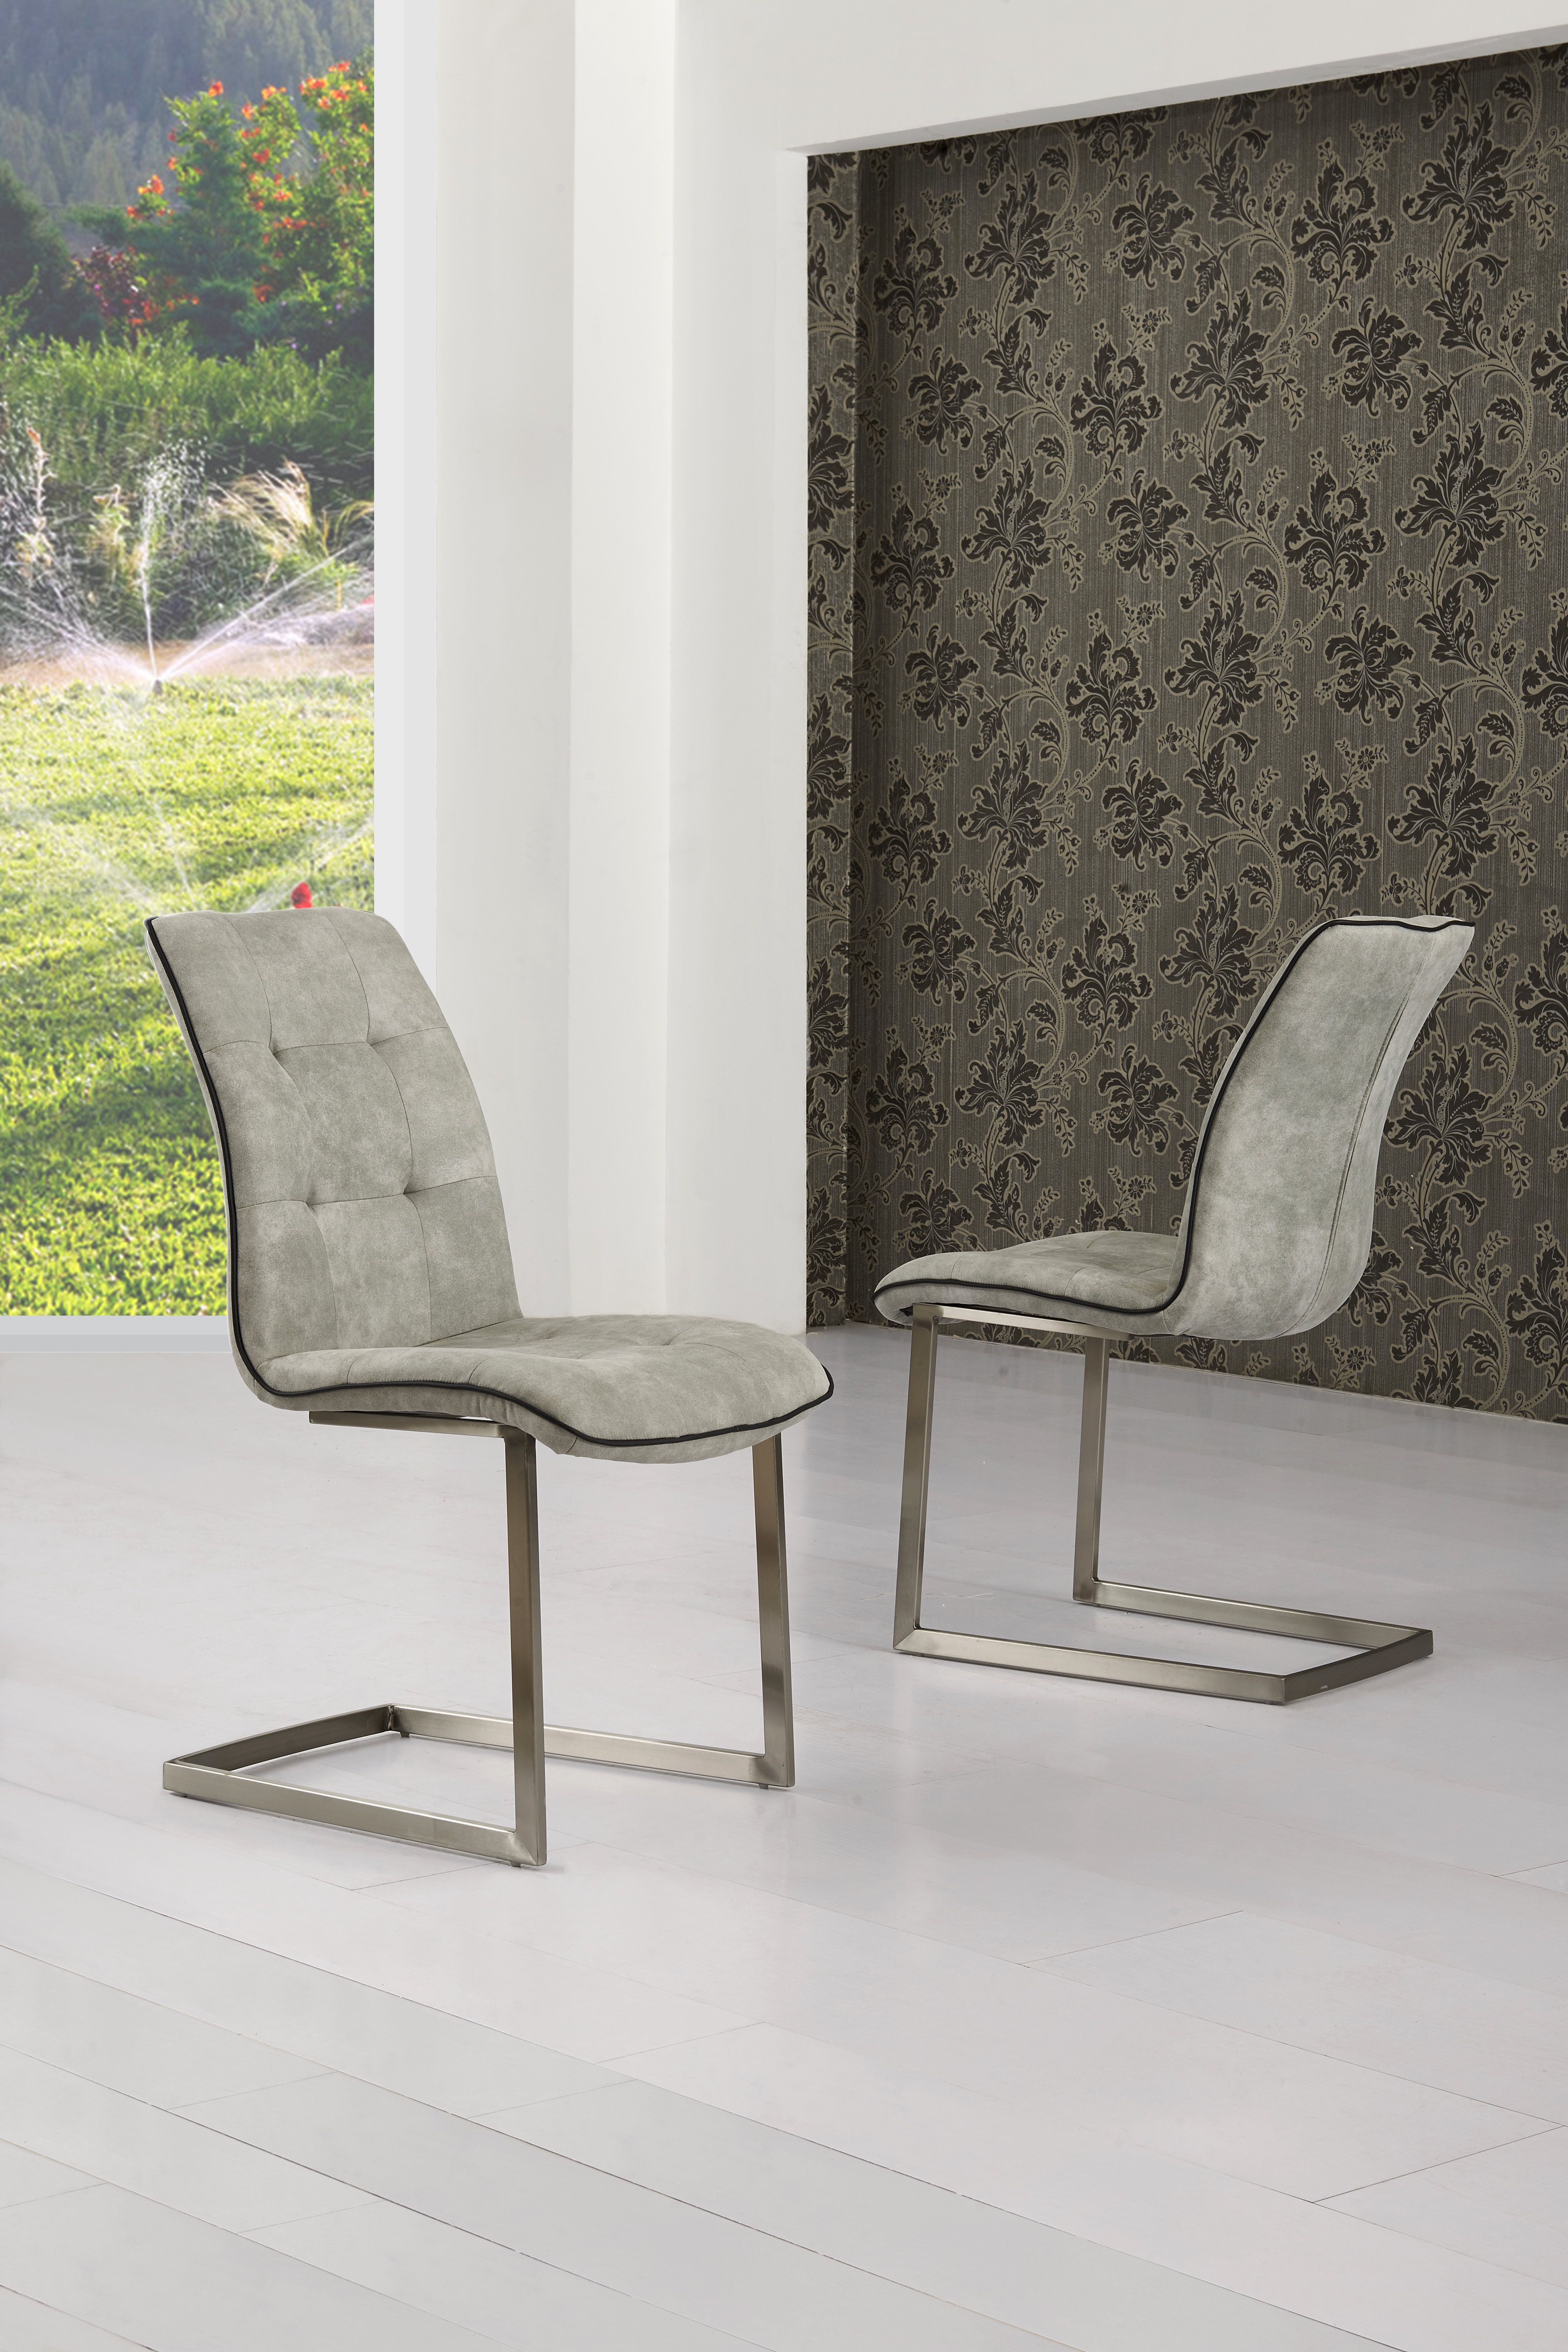 Modish Furnishing : fabric dining chairs - amorenlinea.org